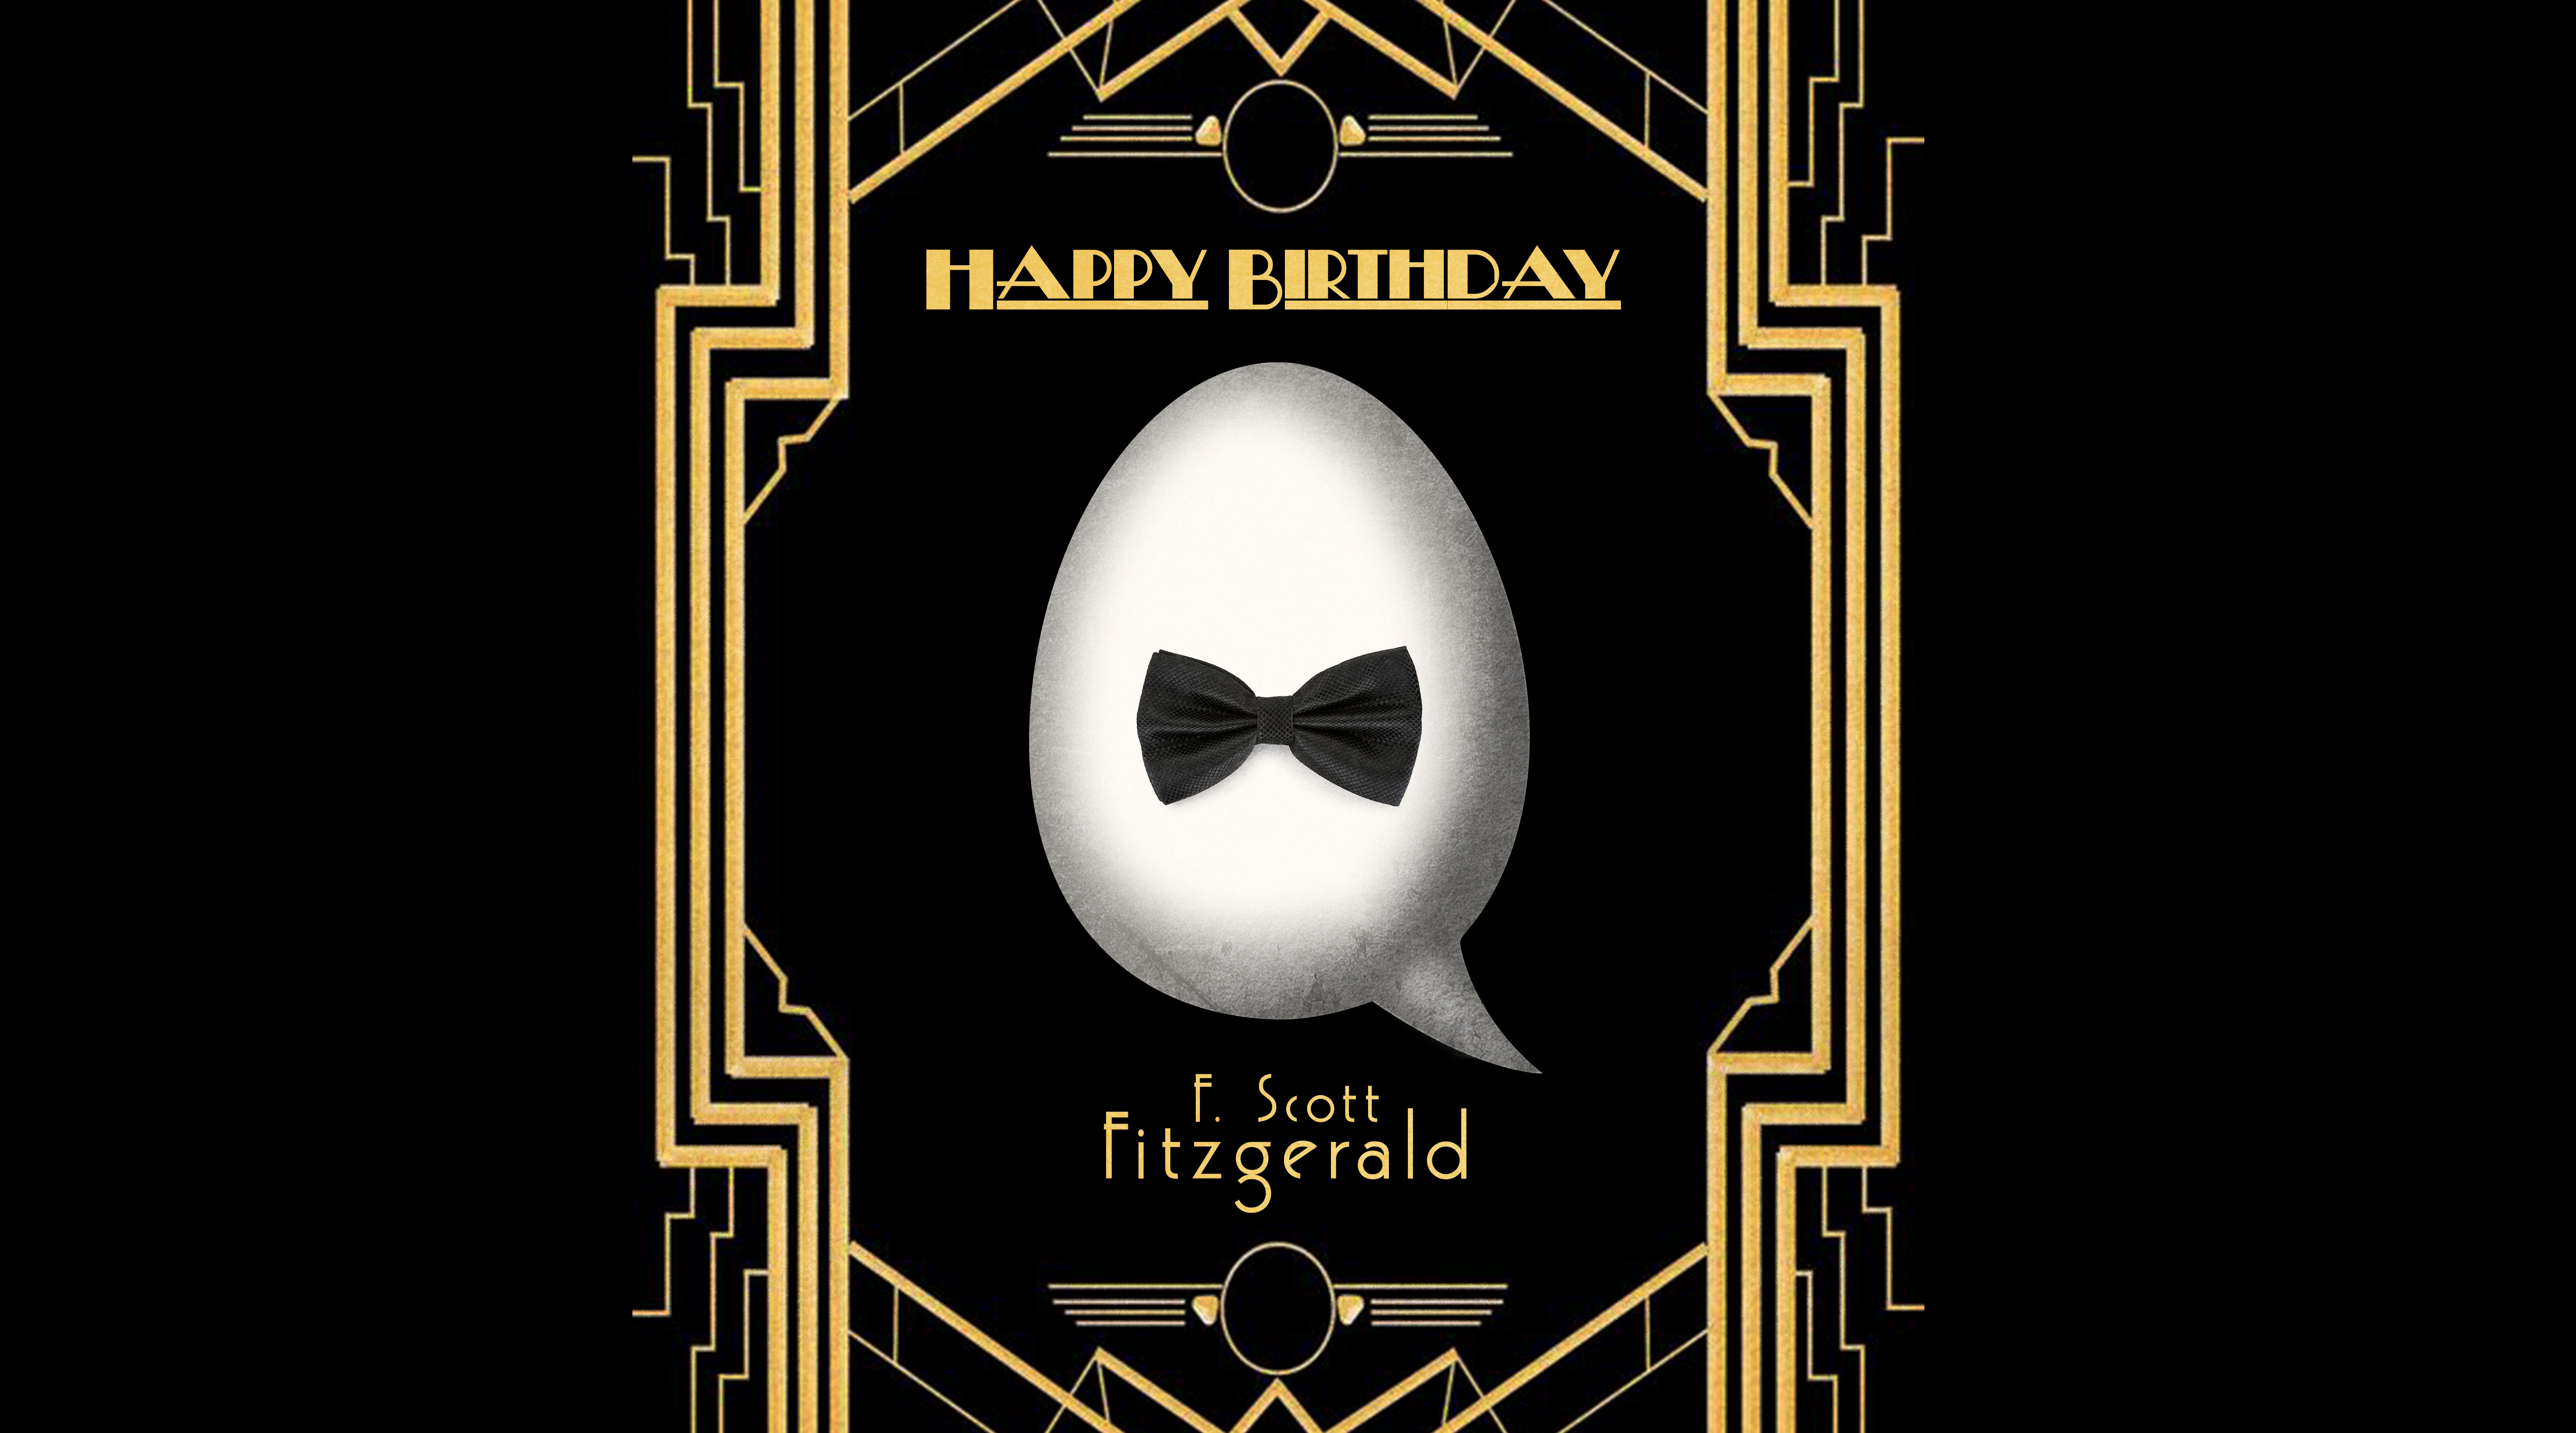 Happy Birthday F. Scott Fitzgerald!